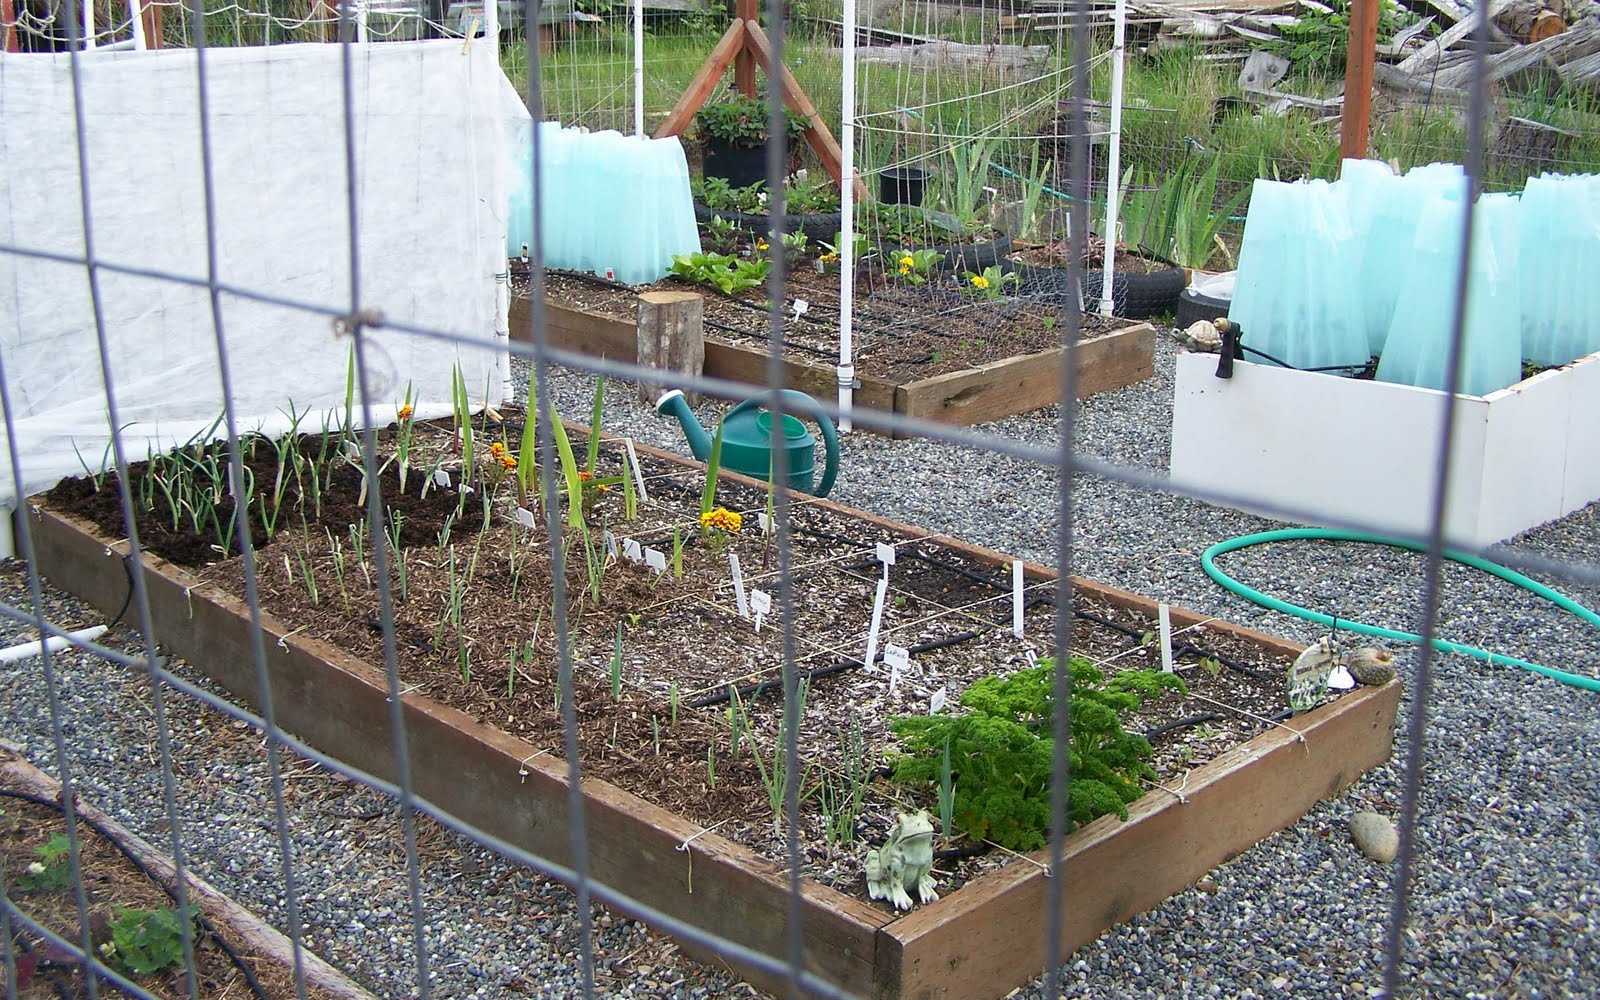 Keewee 39 s garden my fenced deer proof vegetable garden - Deer proof vegetable garden ideas ...